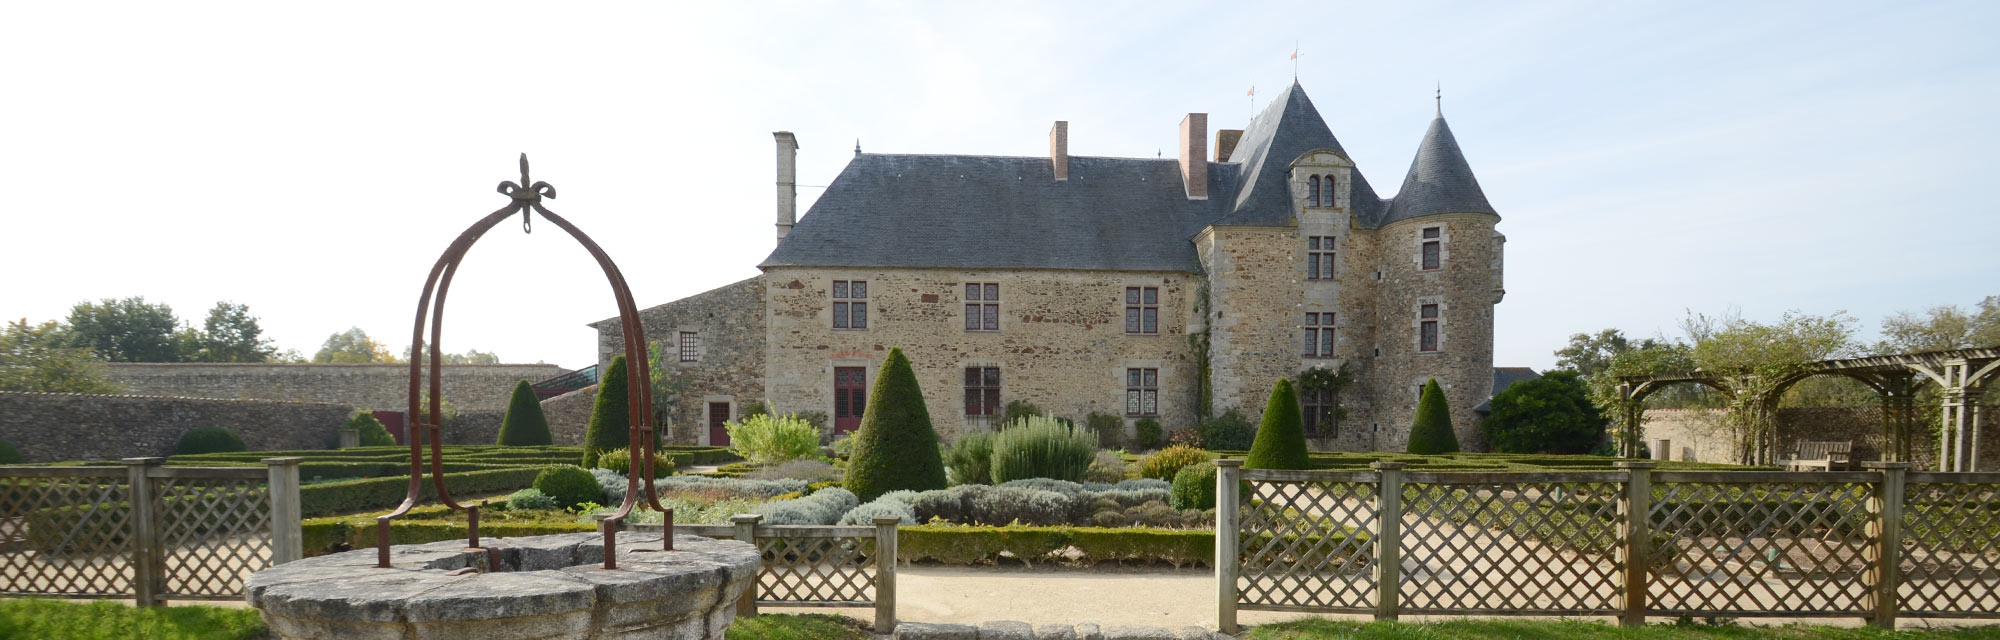 The Logis de la Chabotterie